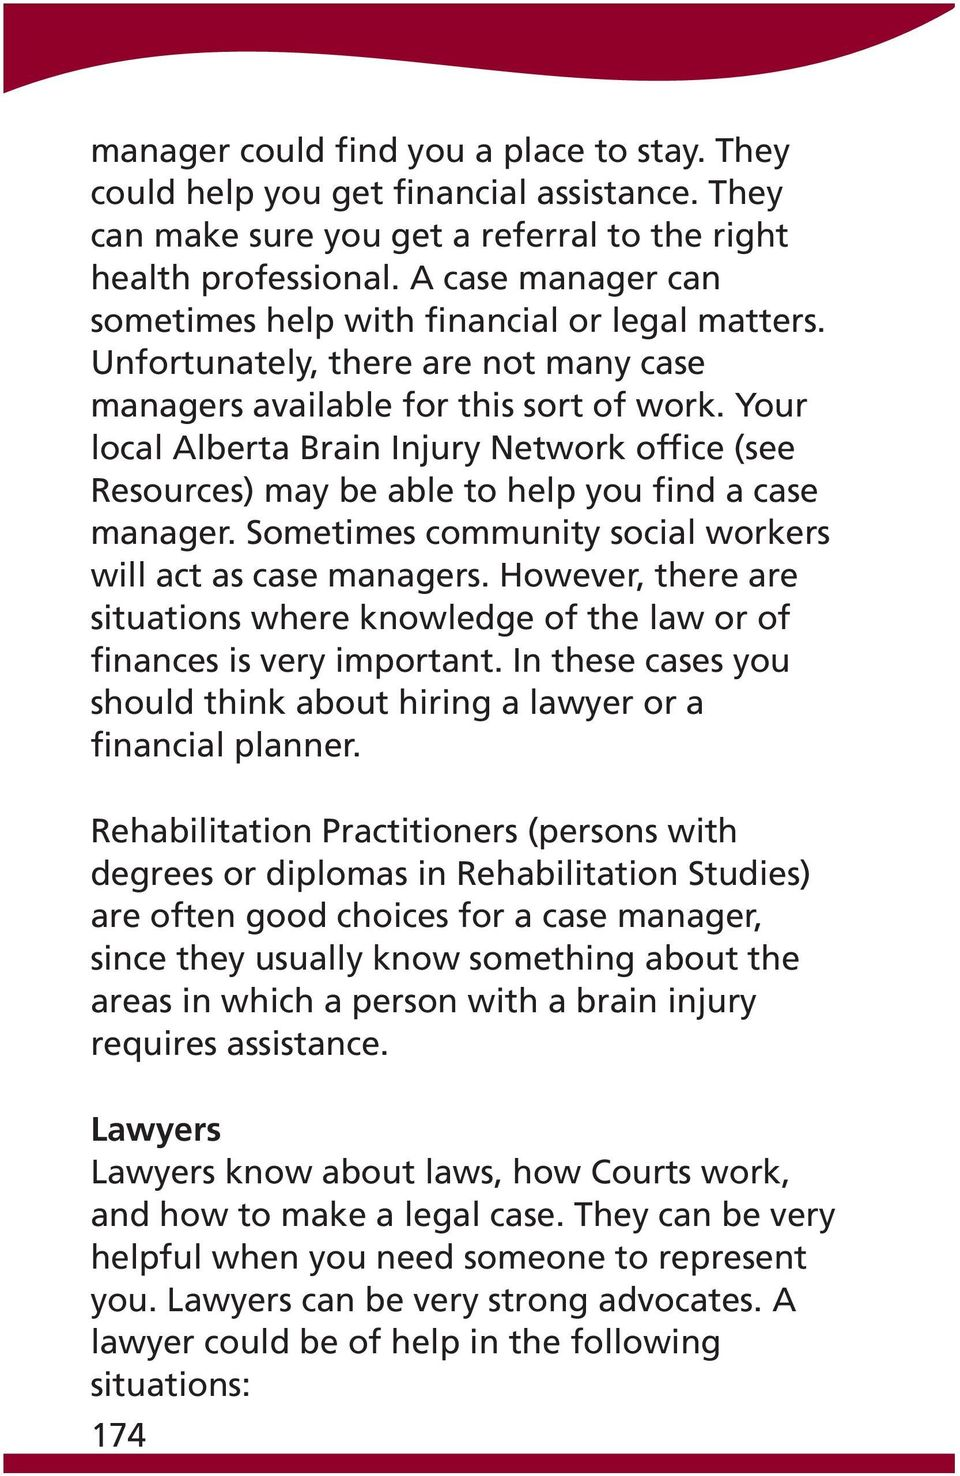 Your local Alberta Brain Injury Network office (see Resources) may be able to help you find a case manager. Sometimes community social workers will act as case managers.